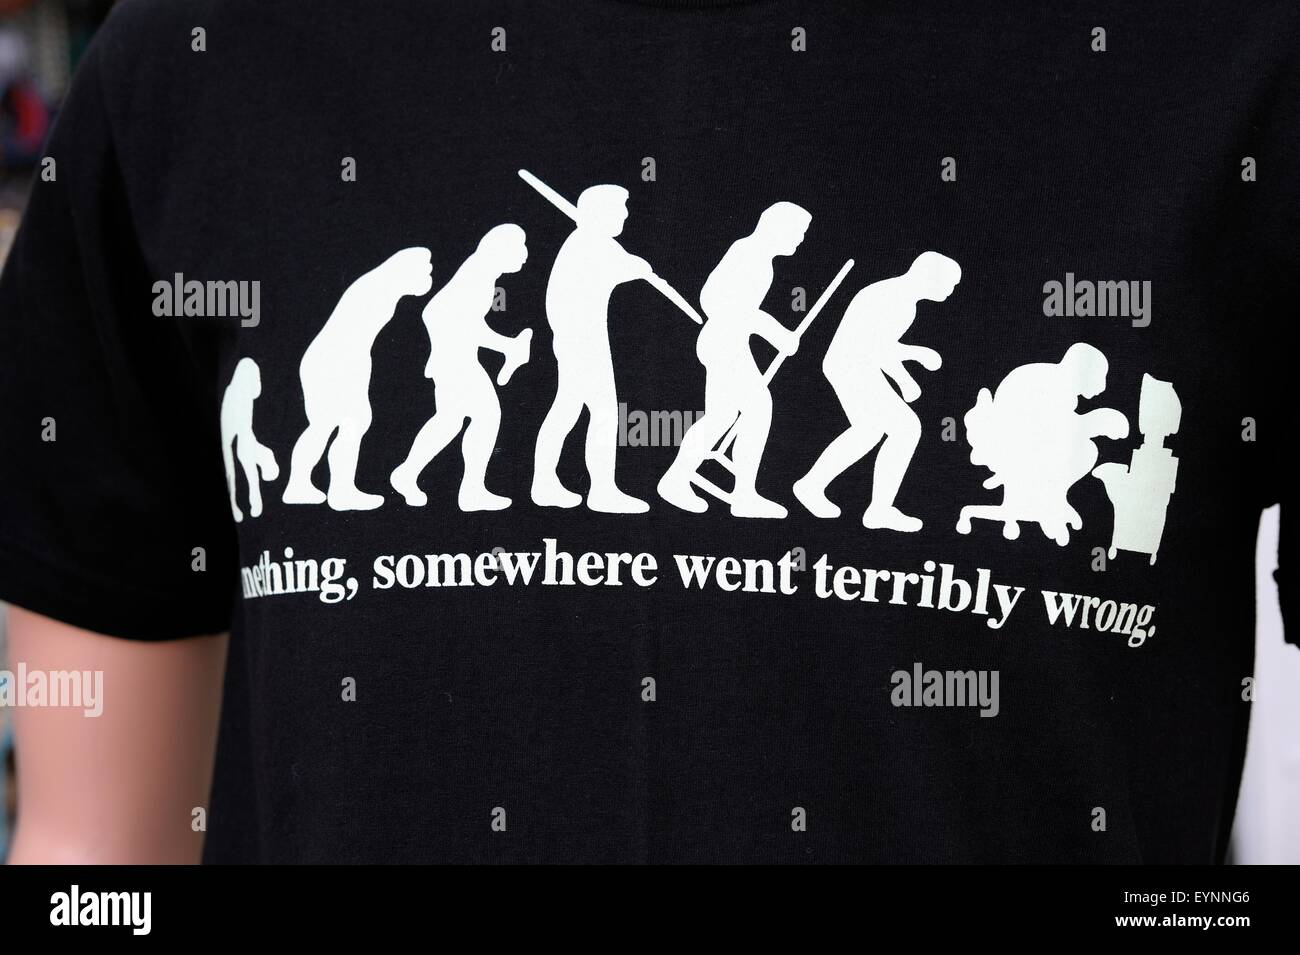 An evolution of man printed t shirt showing end stage as a computer geek. something somewhere went terribly wrong - Stock Image